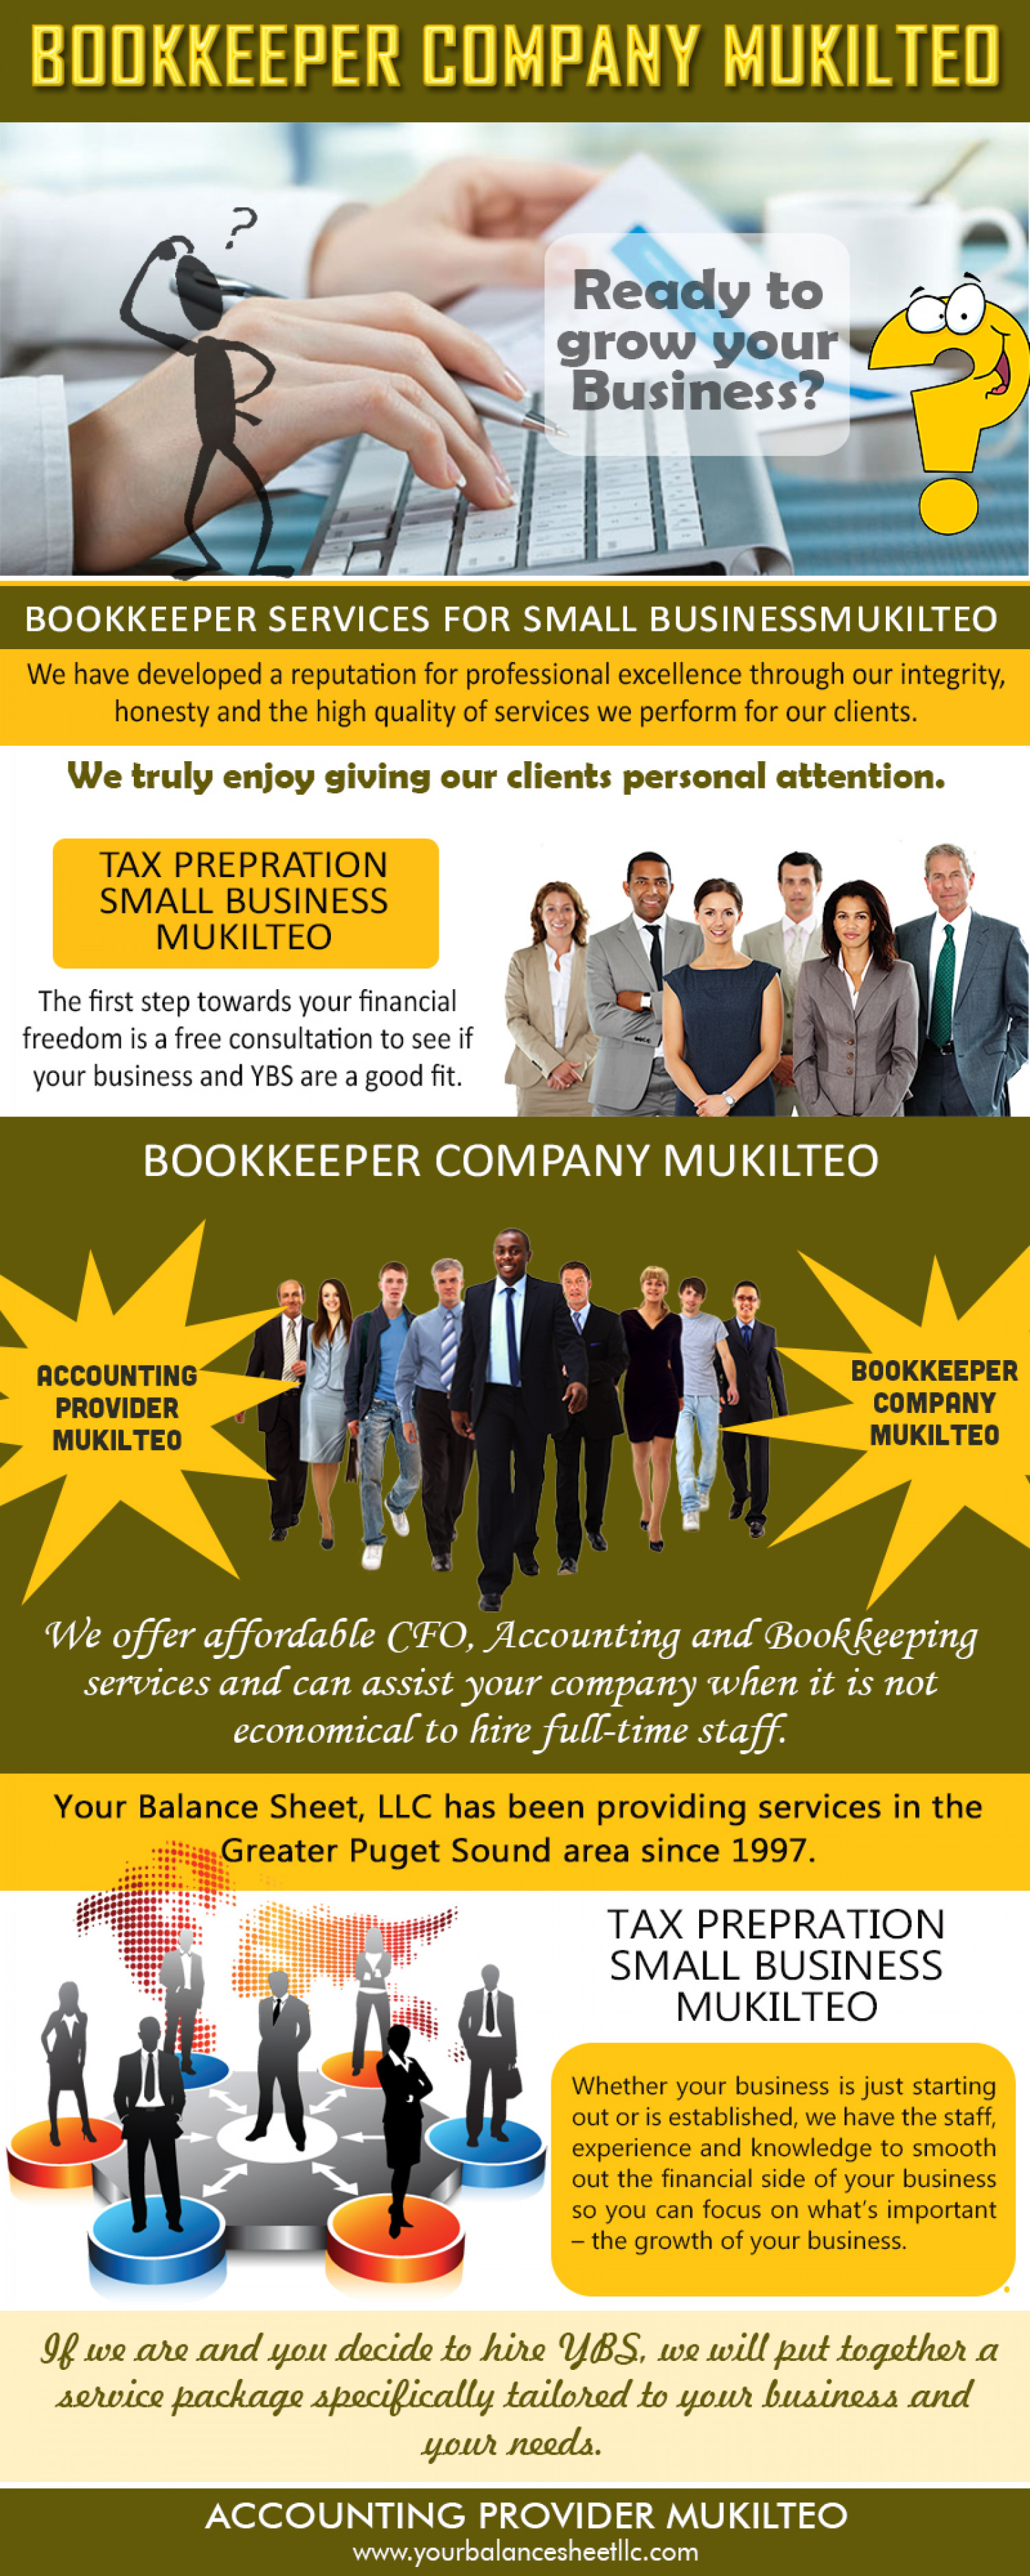 tax preparation small business mukilteo Infographic